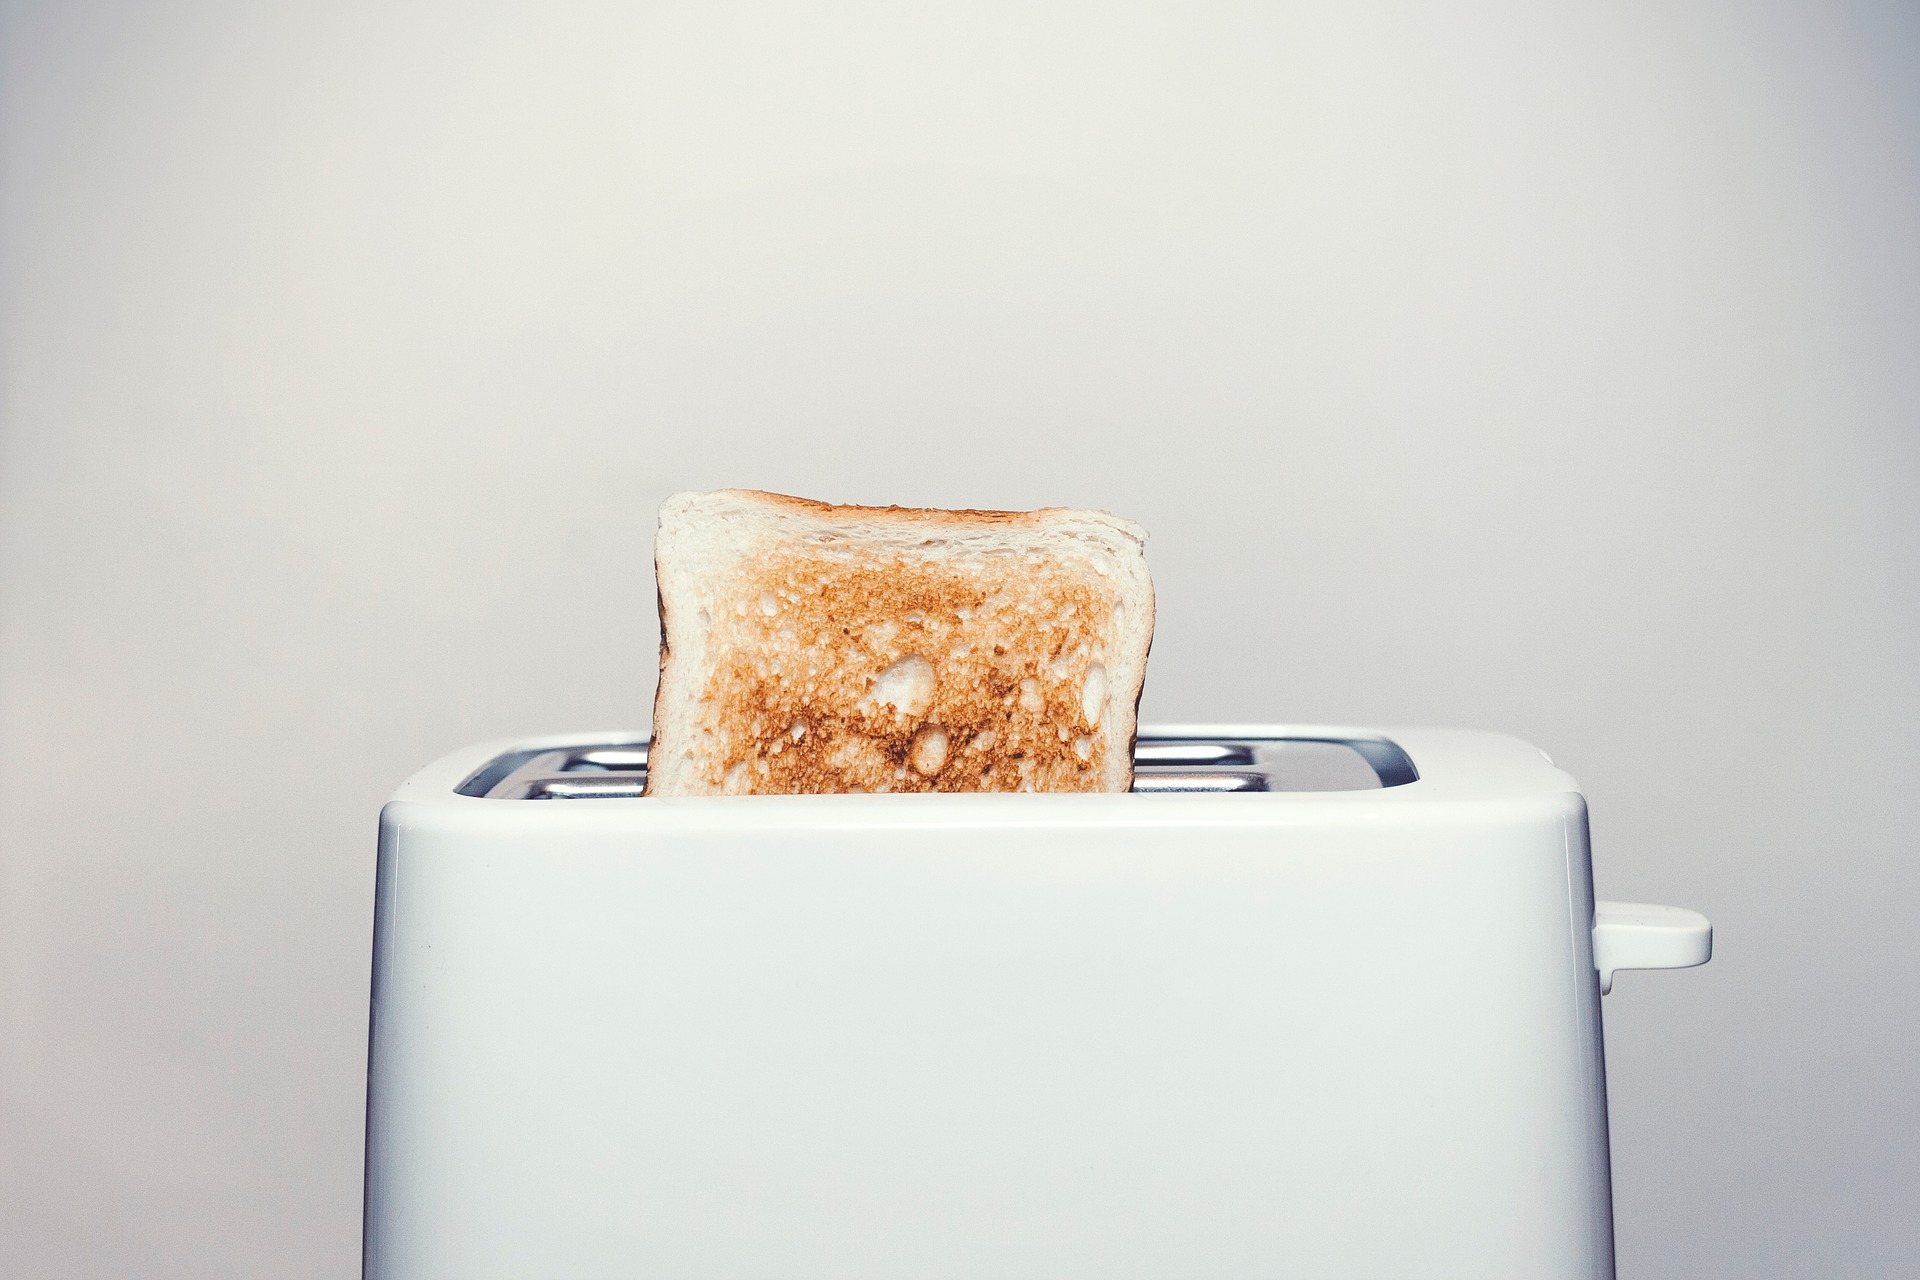 stock image of a toaster